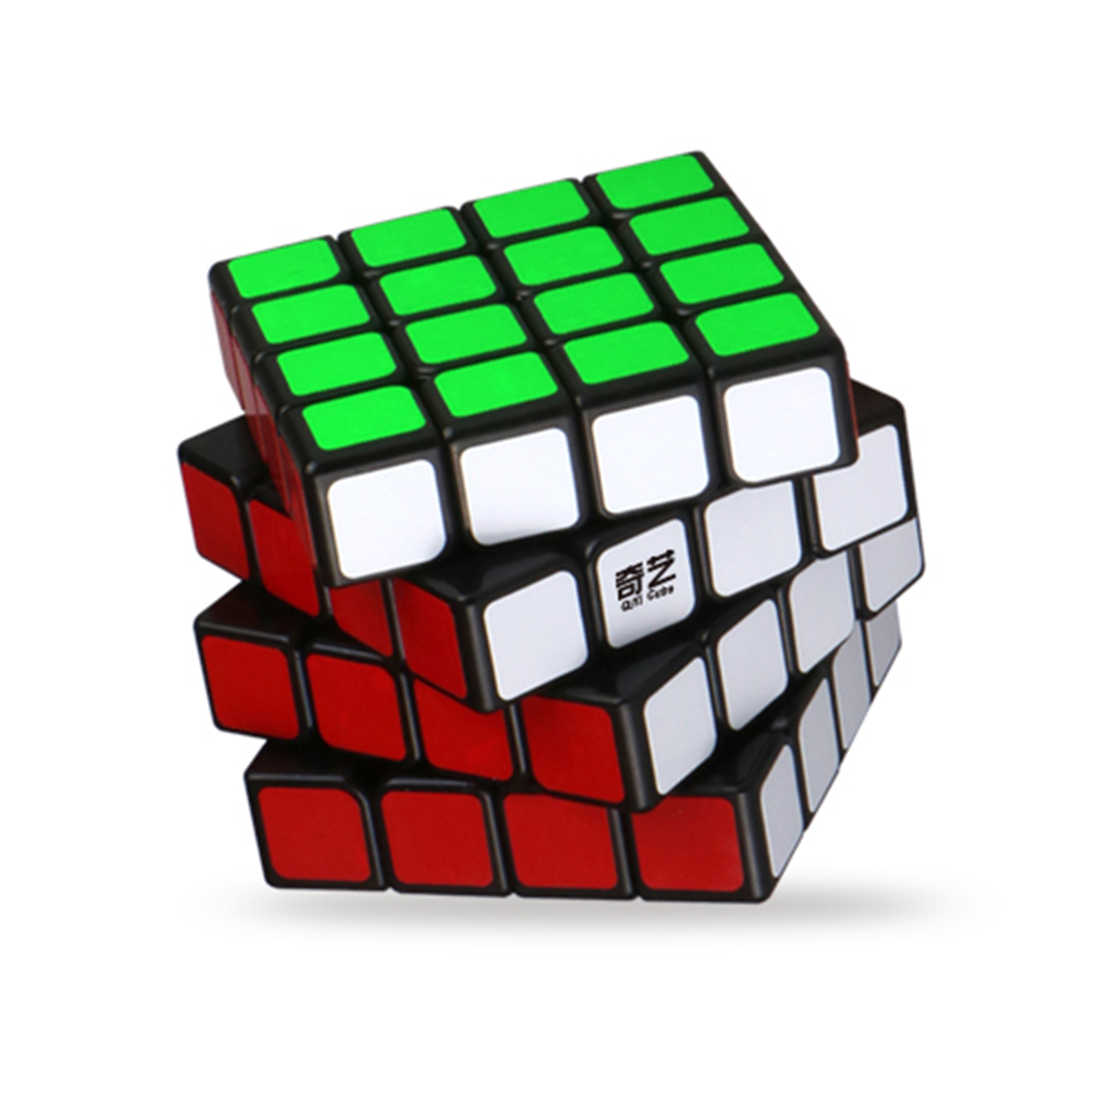 2017 Yeni QiYi Yuan S 4x4 Magic Cube Puzzle Speed - Bulmacalar - Fotoqrafiya 4